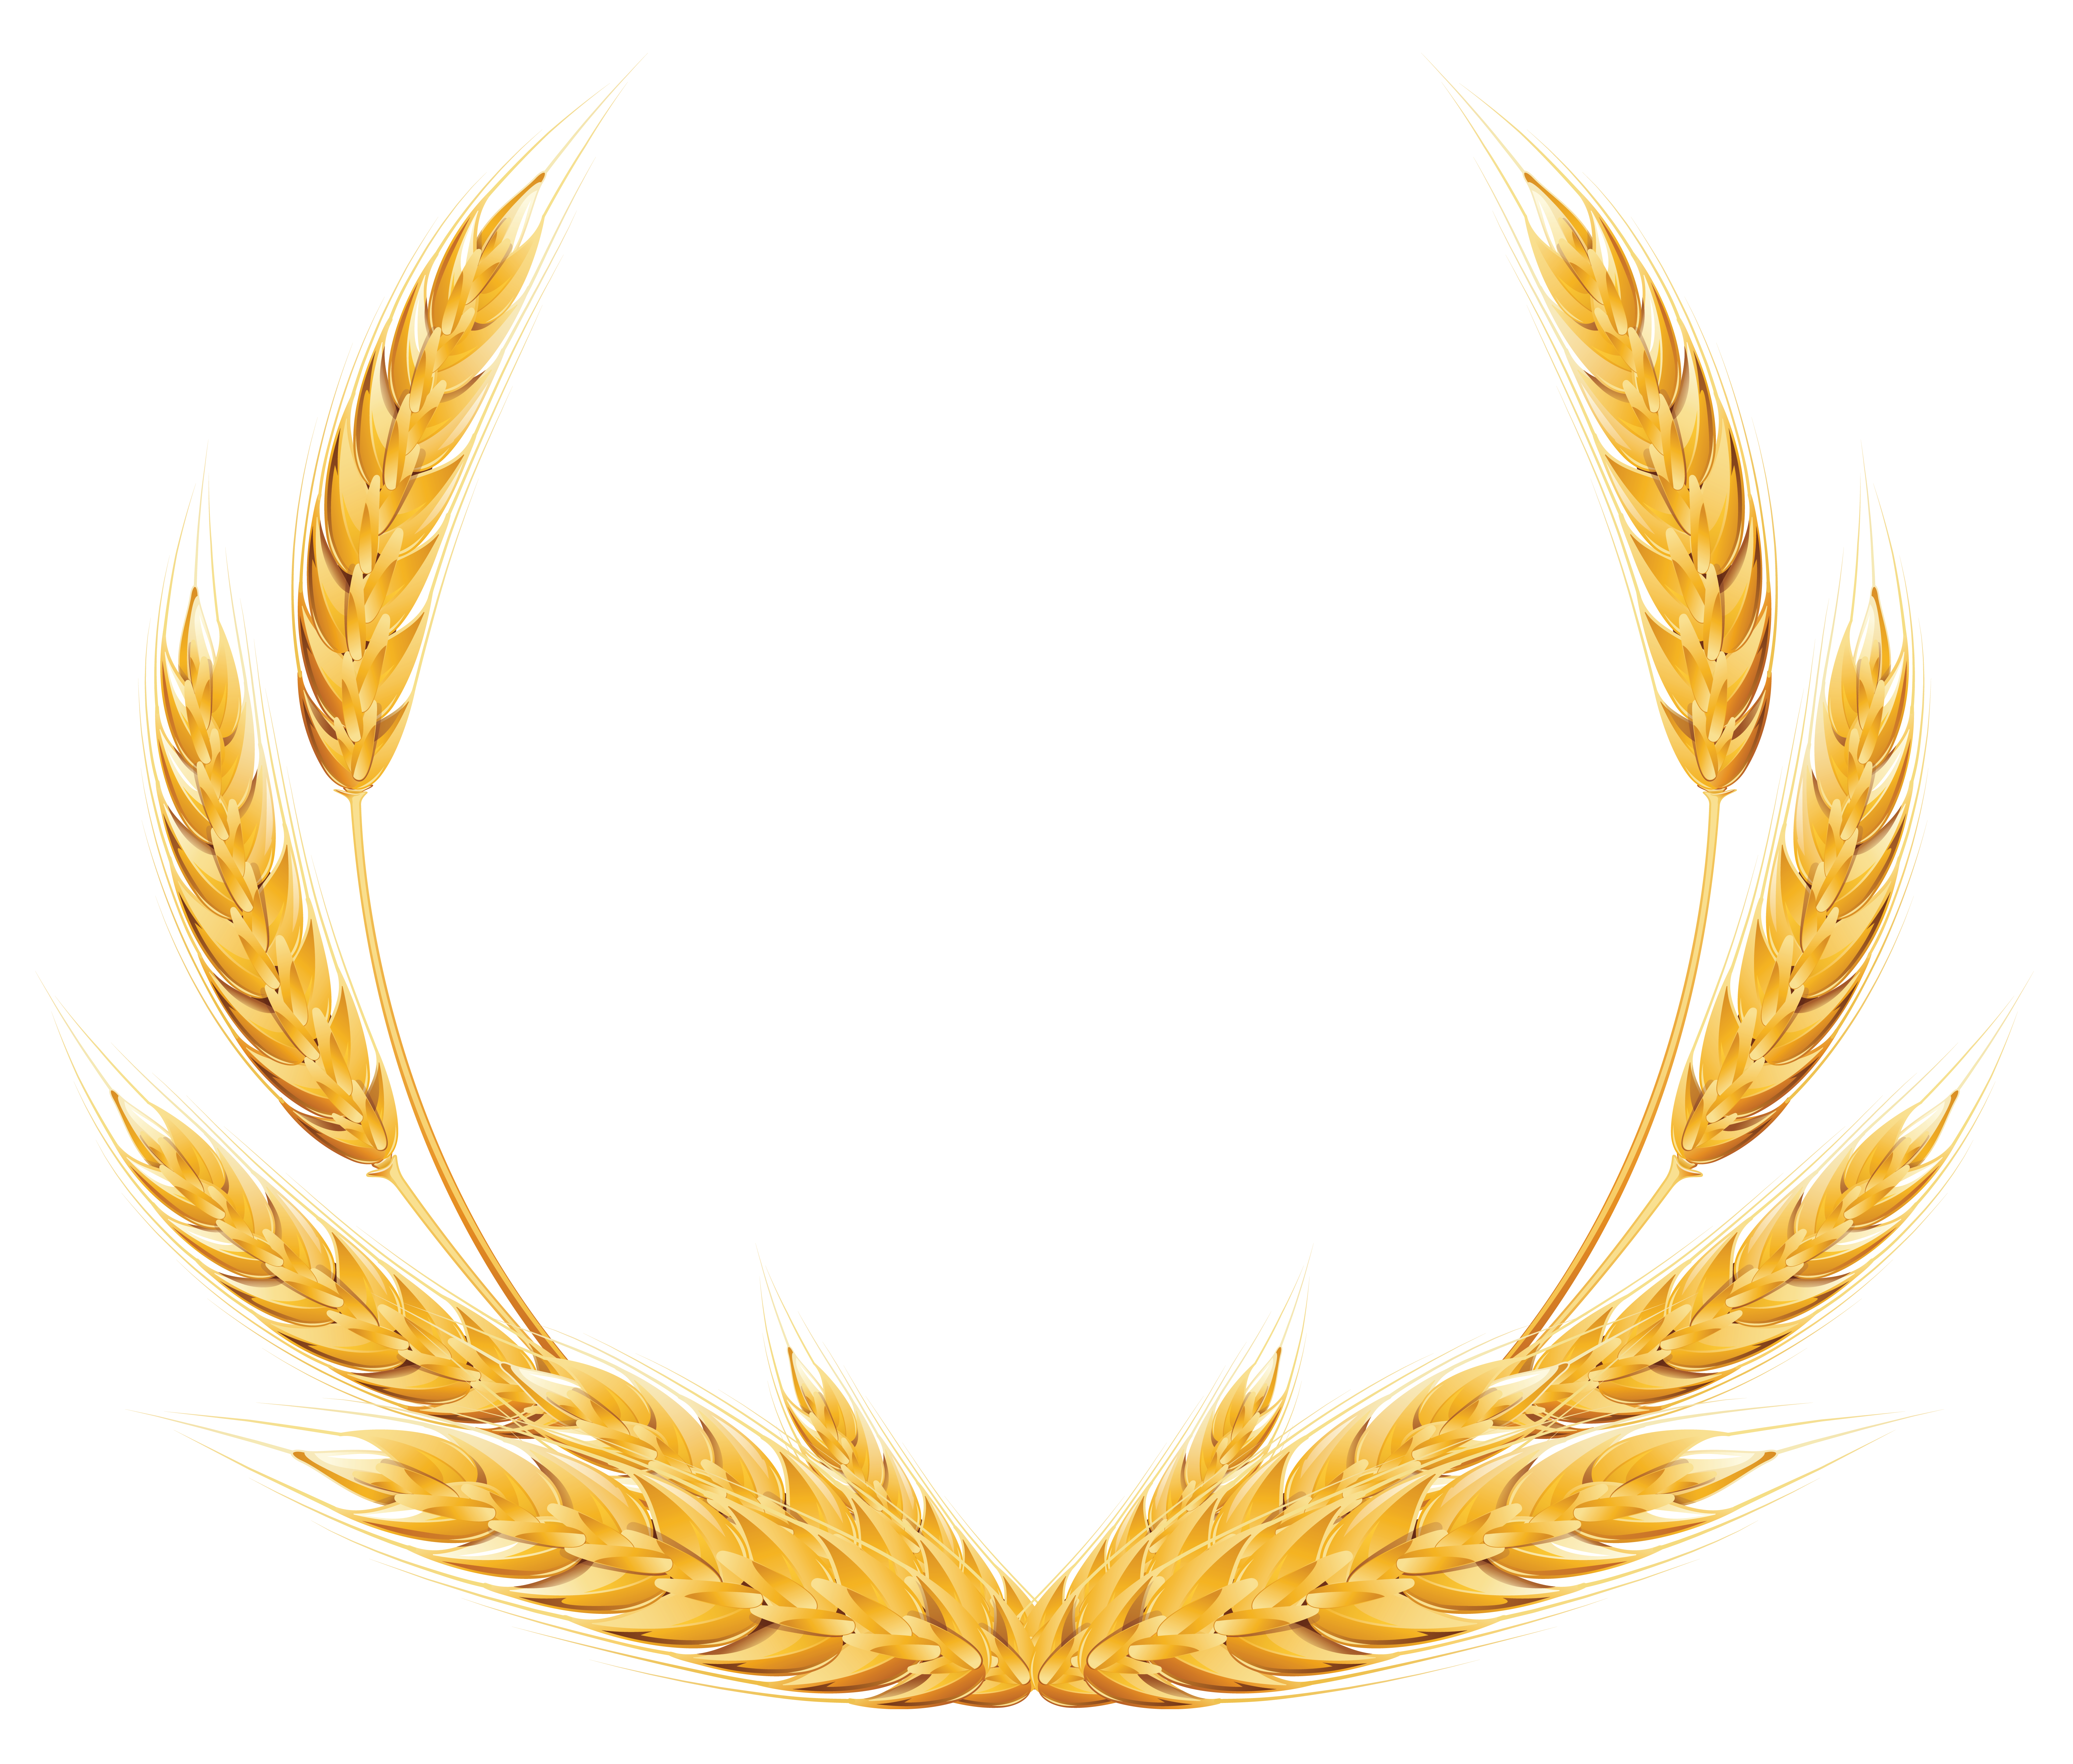 Wheat clipart Free Image PNG Wheat wheat